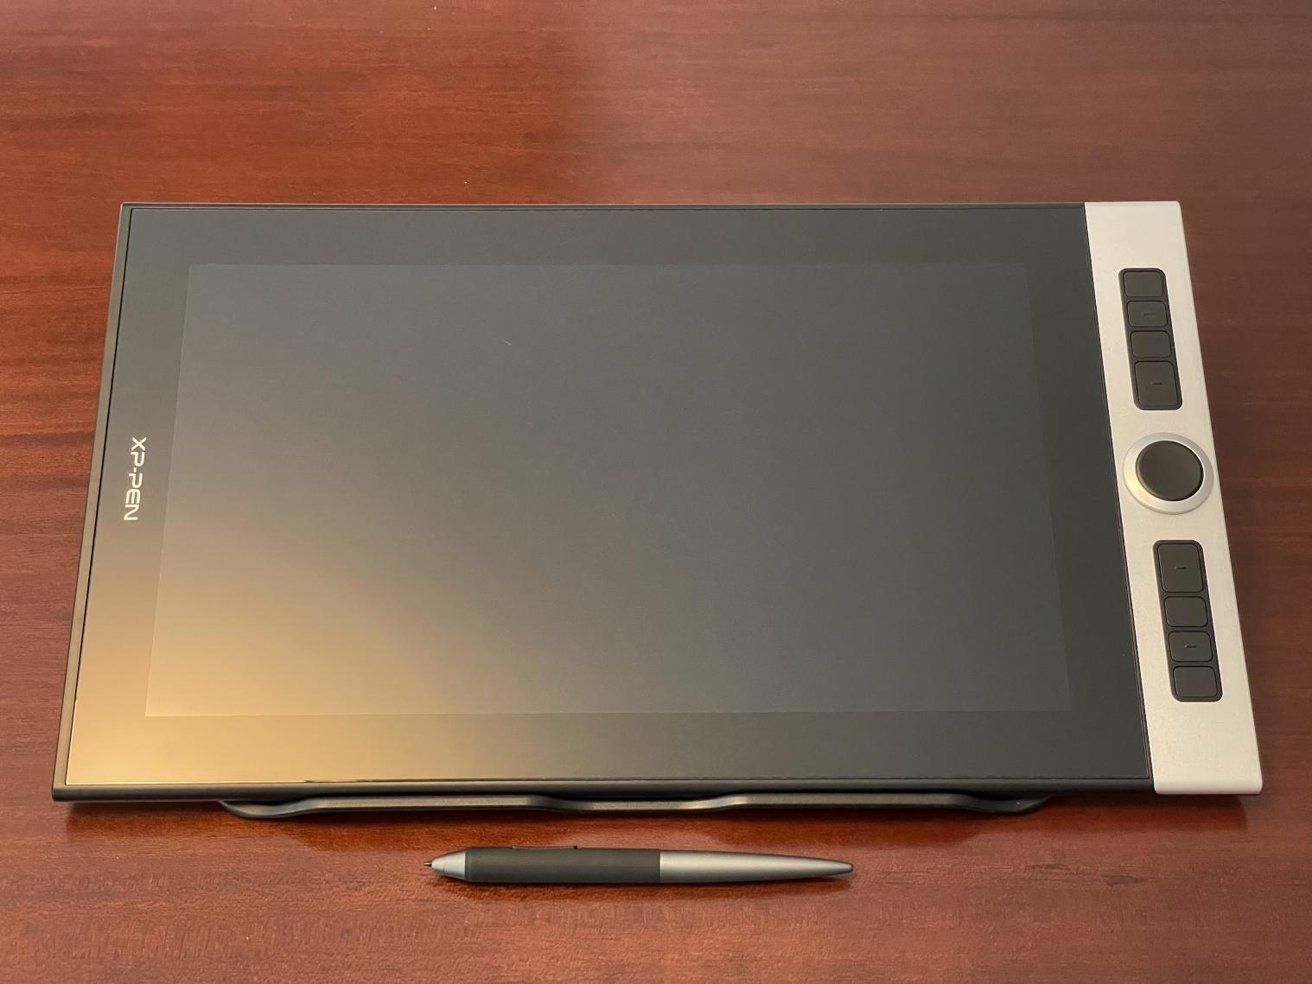 Customizable buttons on the side of the tablet, as well as a dial, can help improve your artistic workflow.